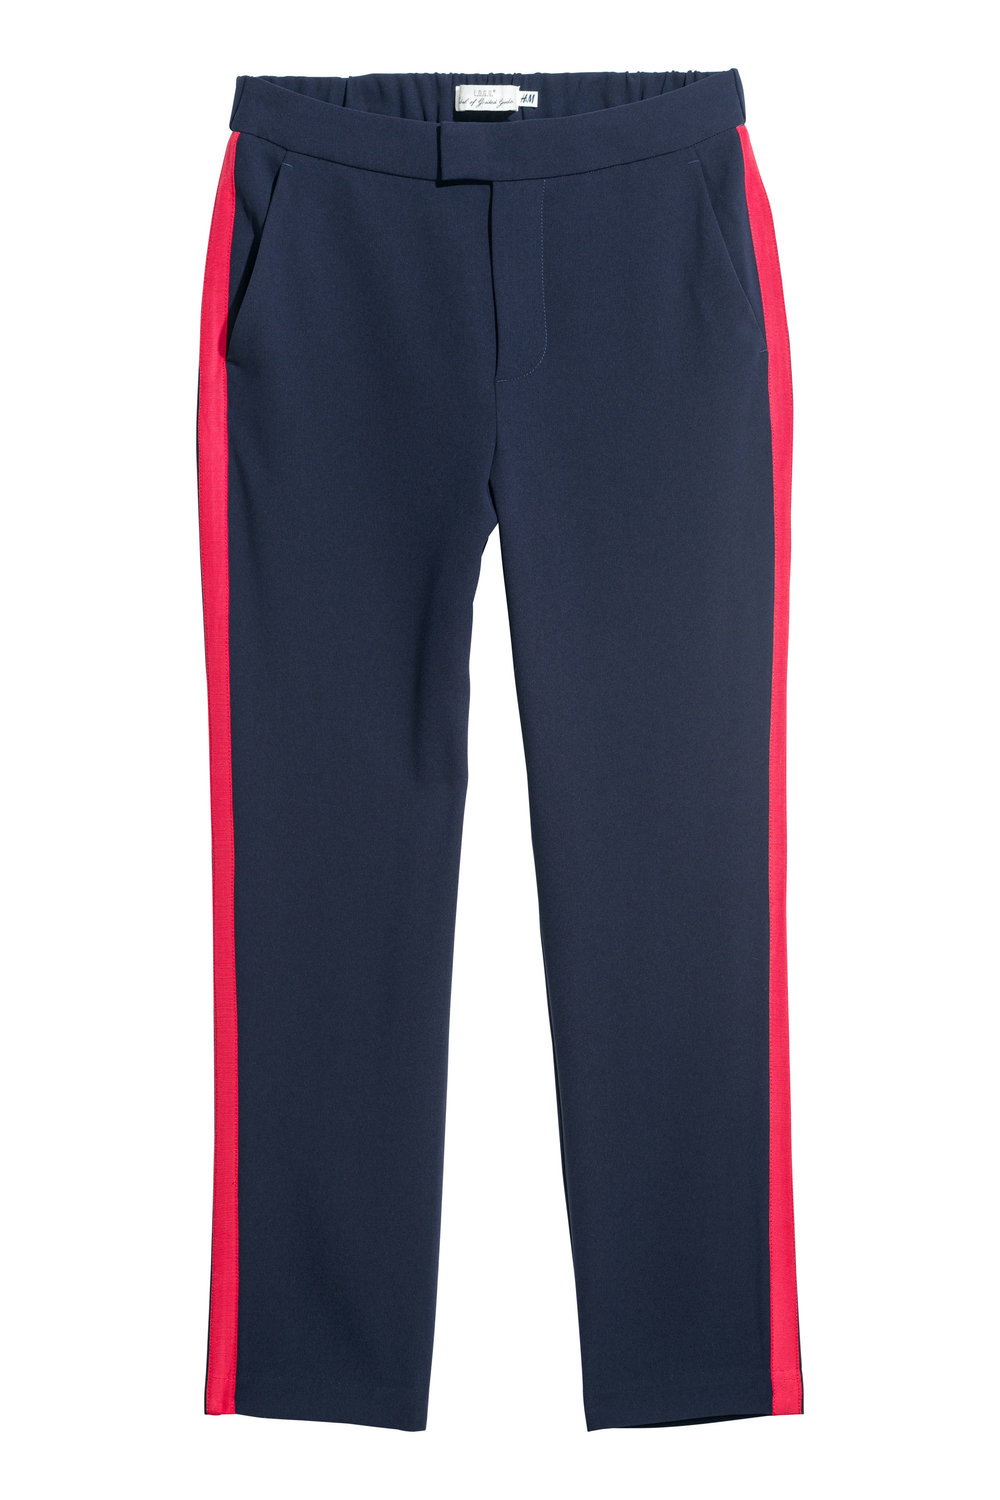 "Fashionable Pants with red ""Baseball-like"" Stripes"